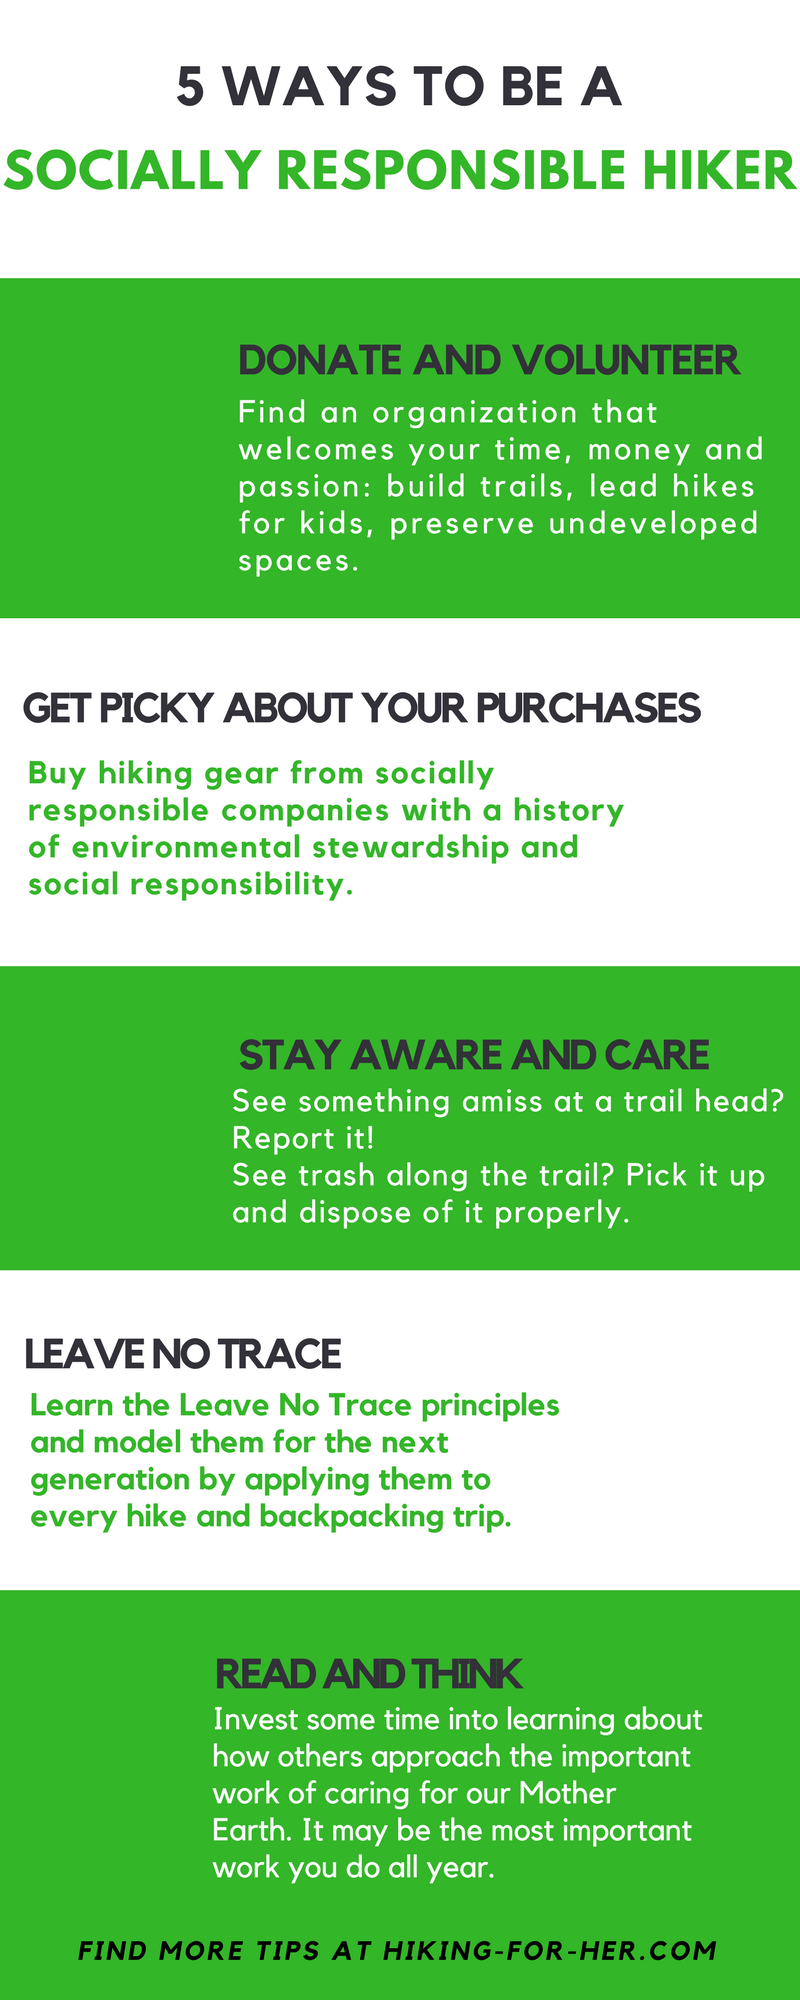 Socially responsible hikers are a special breed. It only takes 5 things to show your environmental stewardship of the wild places.